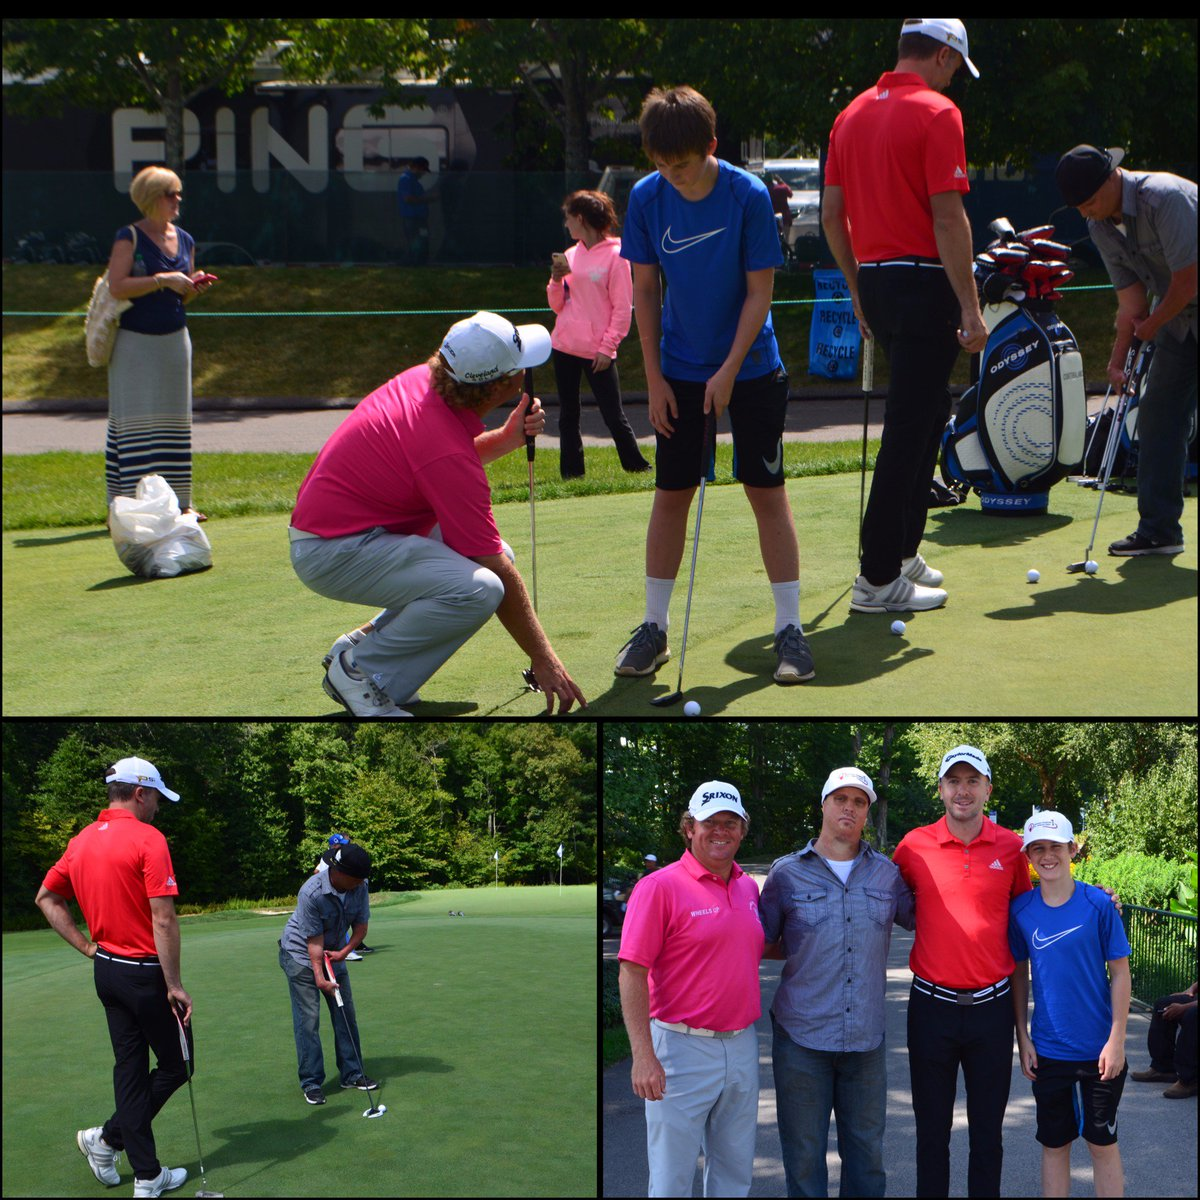 Two Boston @shrinershosp patients had the chance to putt w/ @PGATOUR pros @WilliamMcGirt & Martin Laird @TPCBoston! https://t.co/FKb8RSDm4u